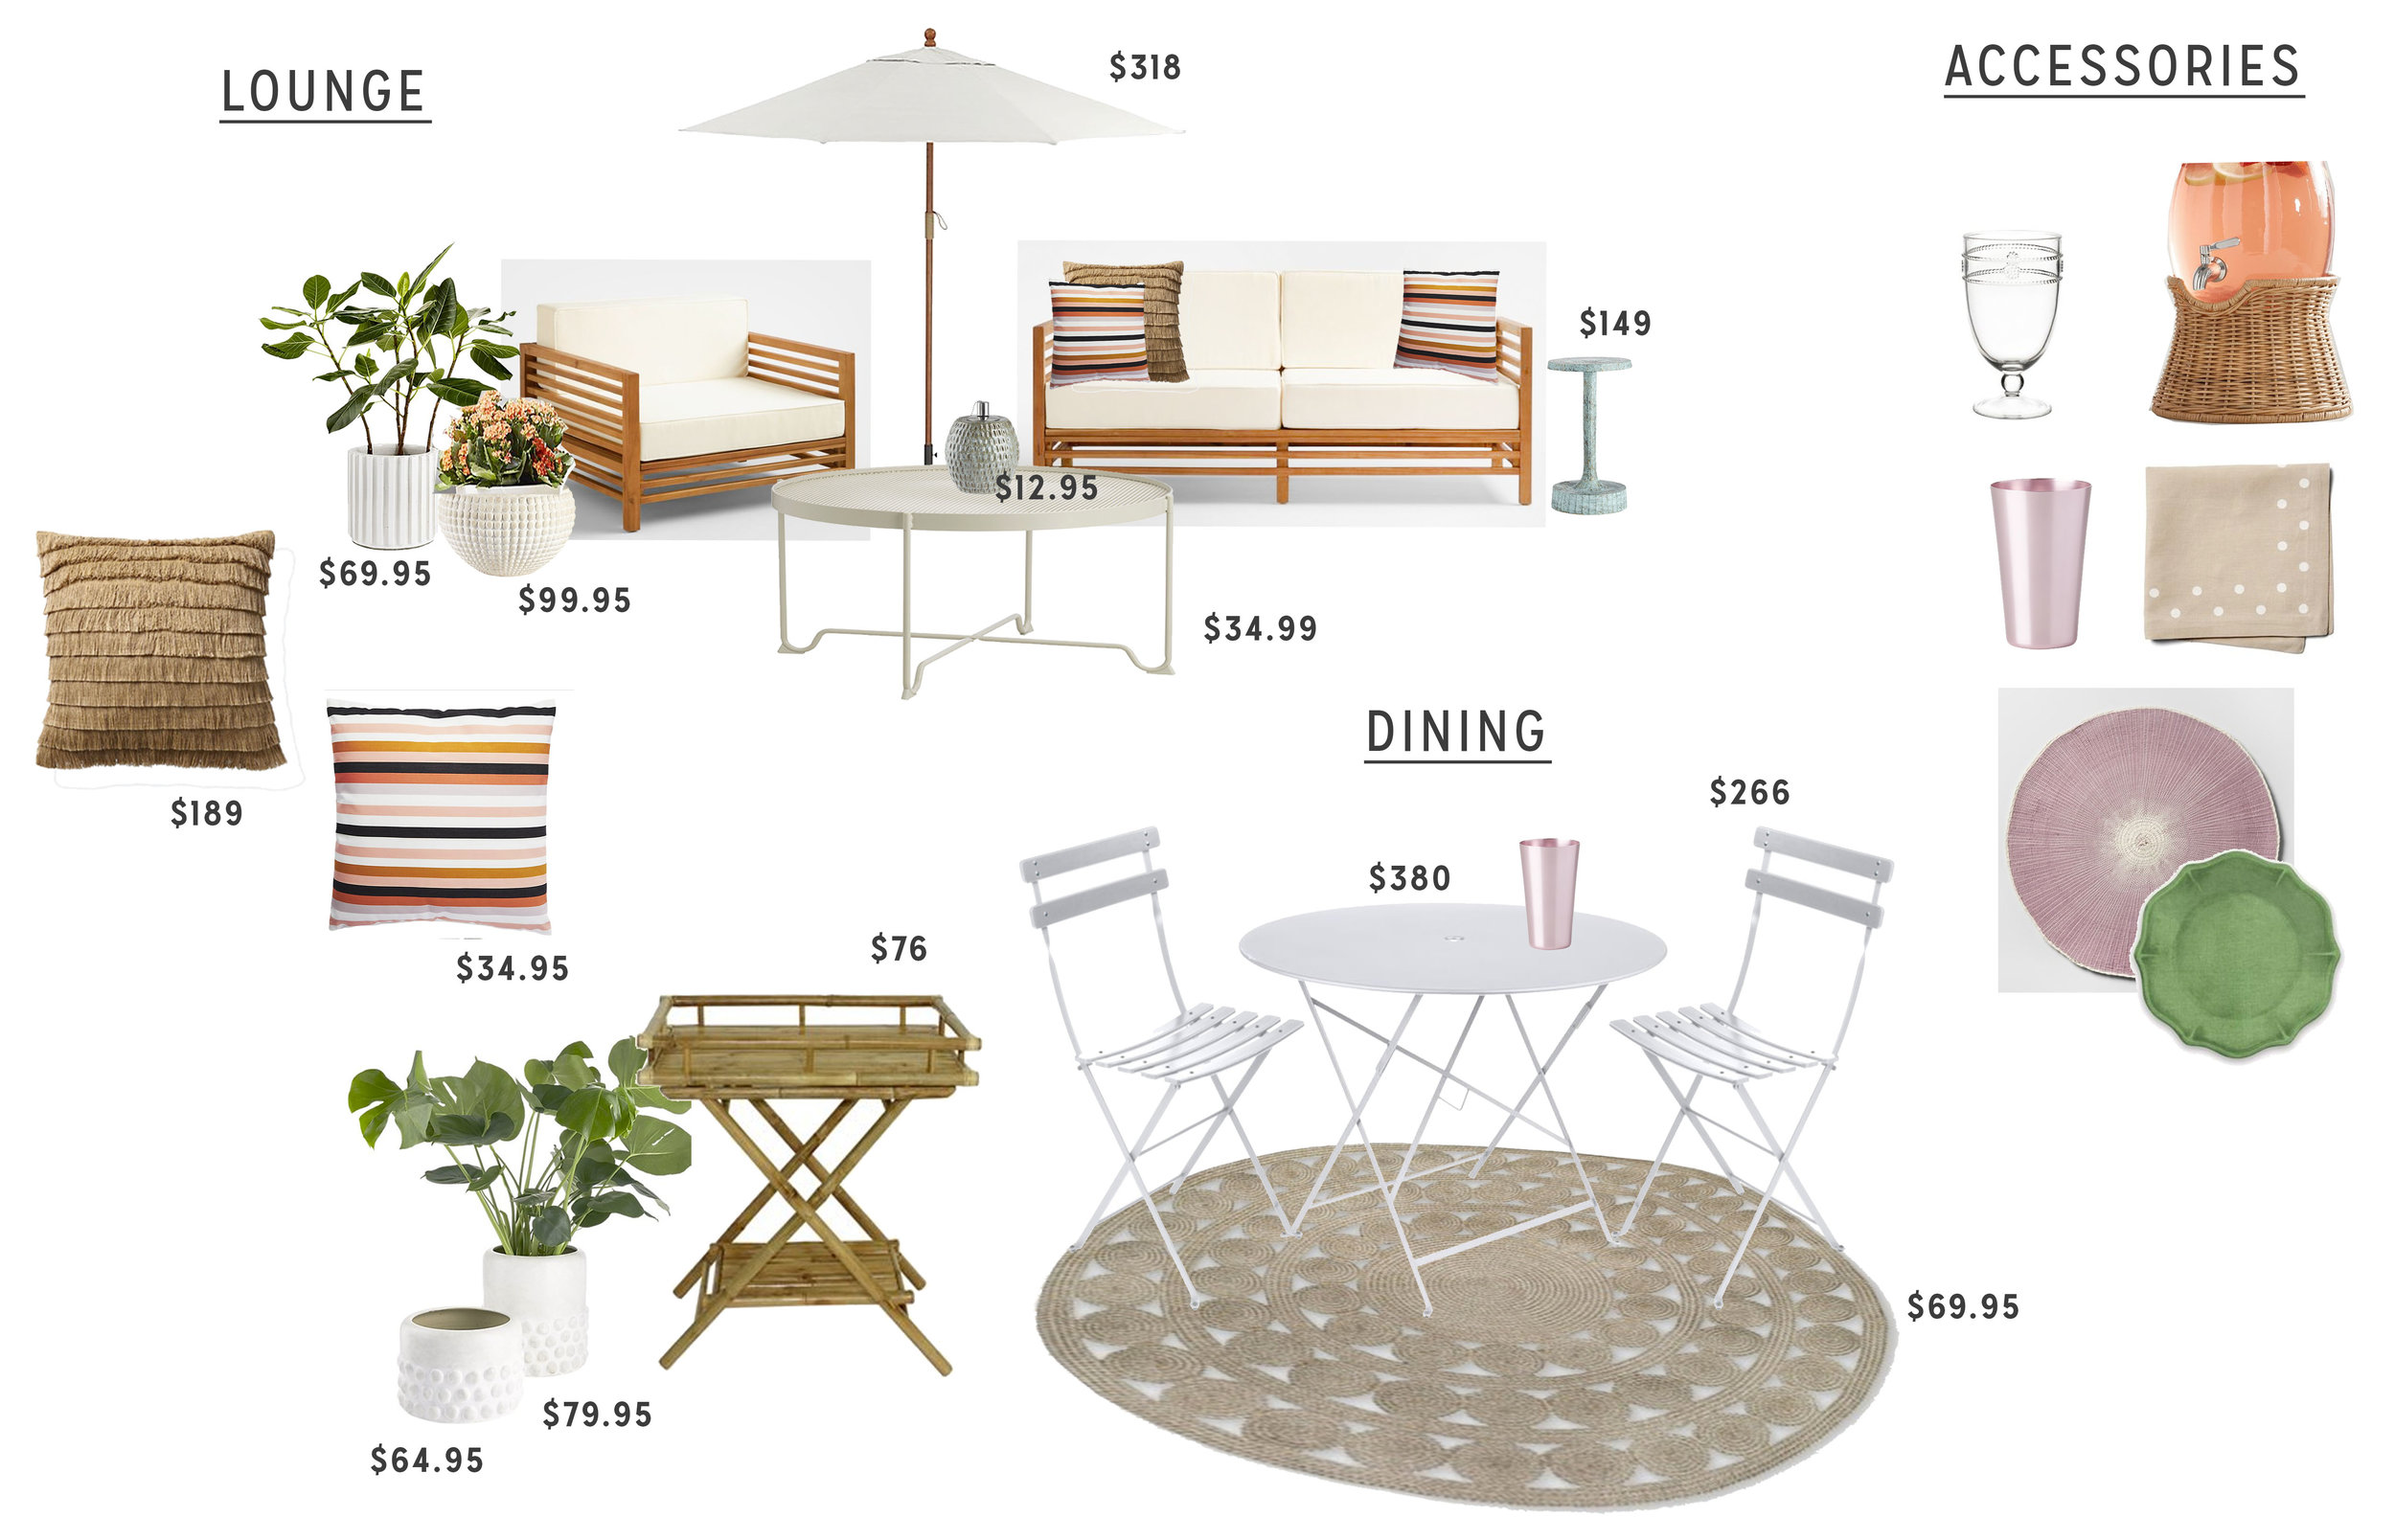 My furniture plan with pricing.